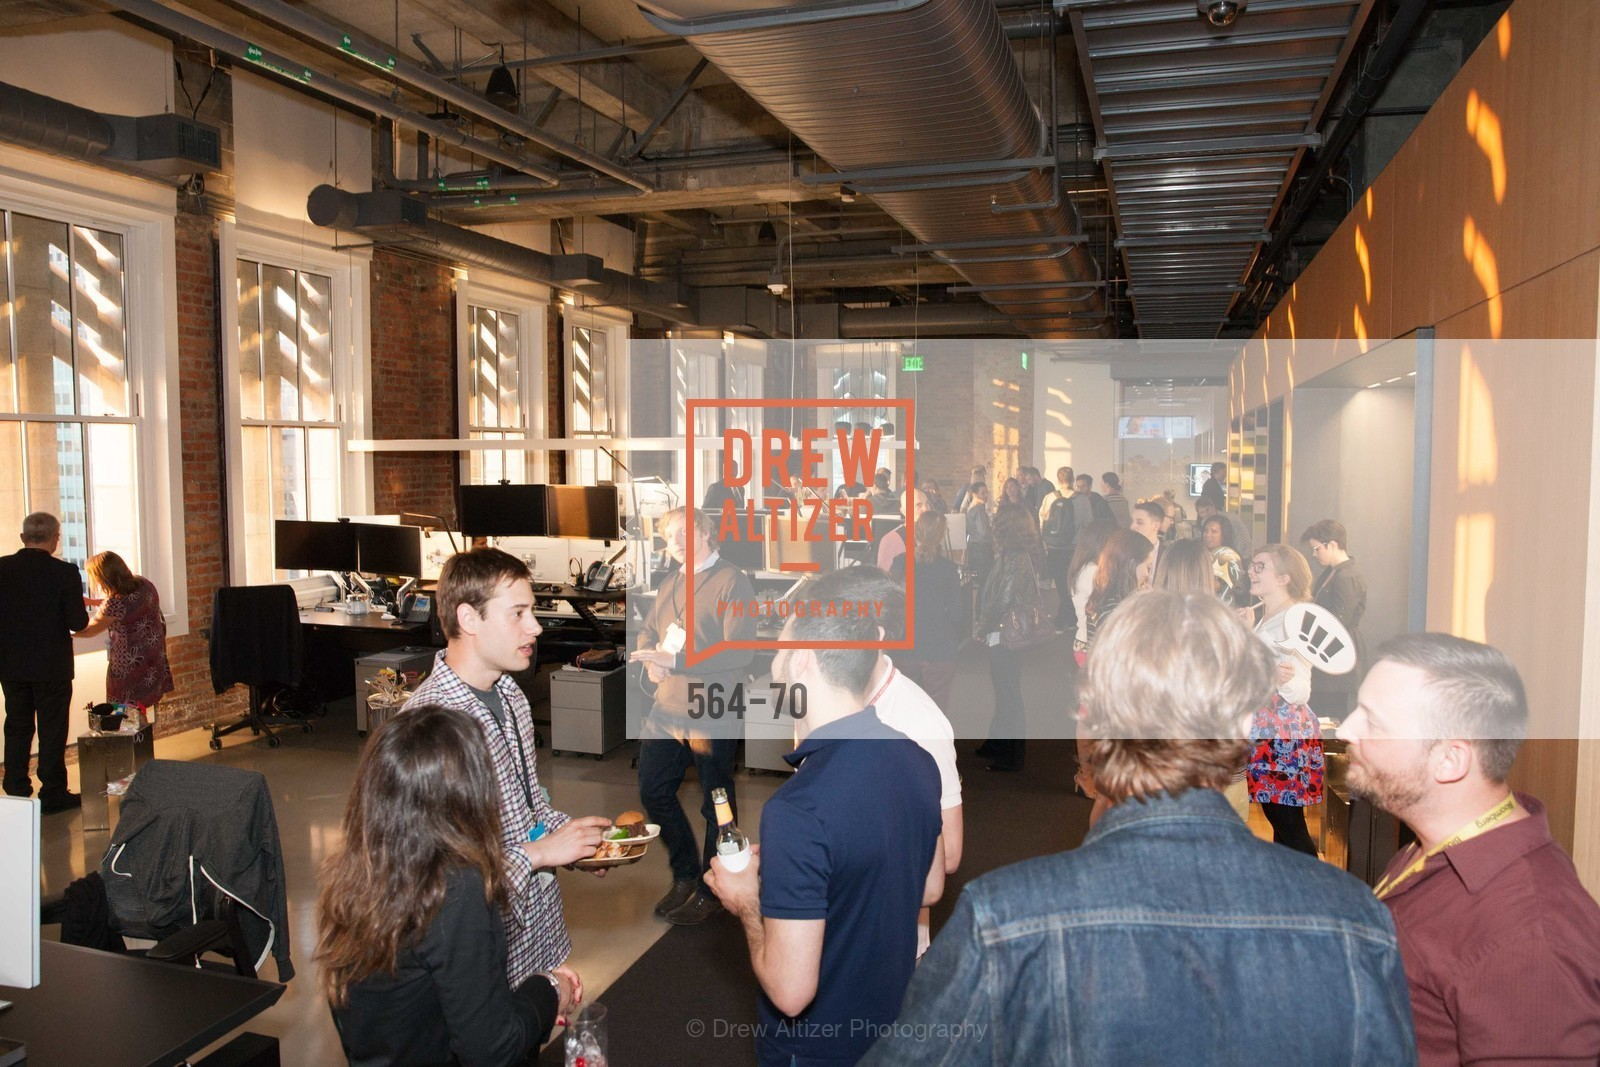 Extras, Bloomberg Tech Hosts New San Francisco Office Opening Party, May 6th, 2015, Photo,Drew Altizer, Drew Altizer Photography, full-service agency, private events, San Francisco photographer, photographer california